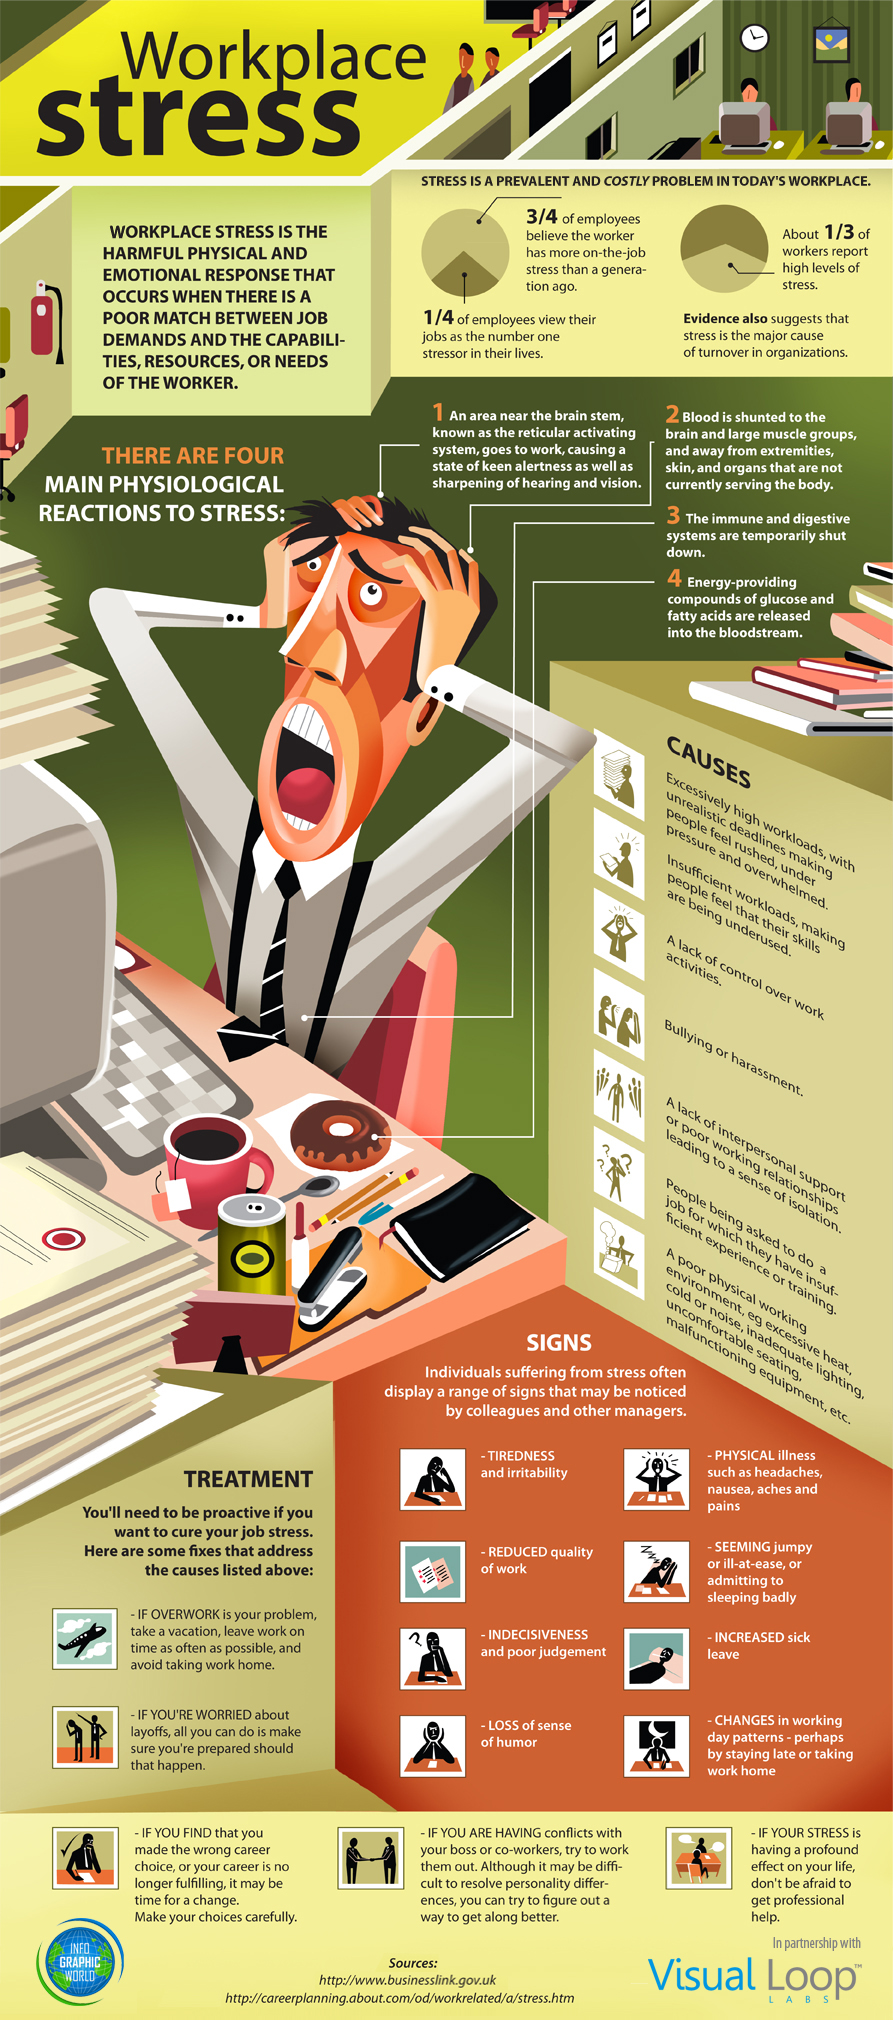 Workplace Stress Infographic - reprinted here courtesy of ComplianceAndSafety.com, maker of workplace safety videos